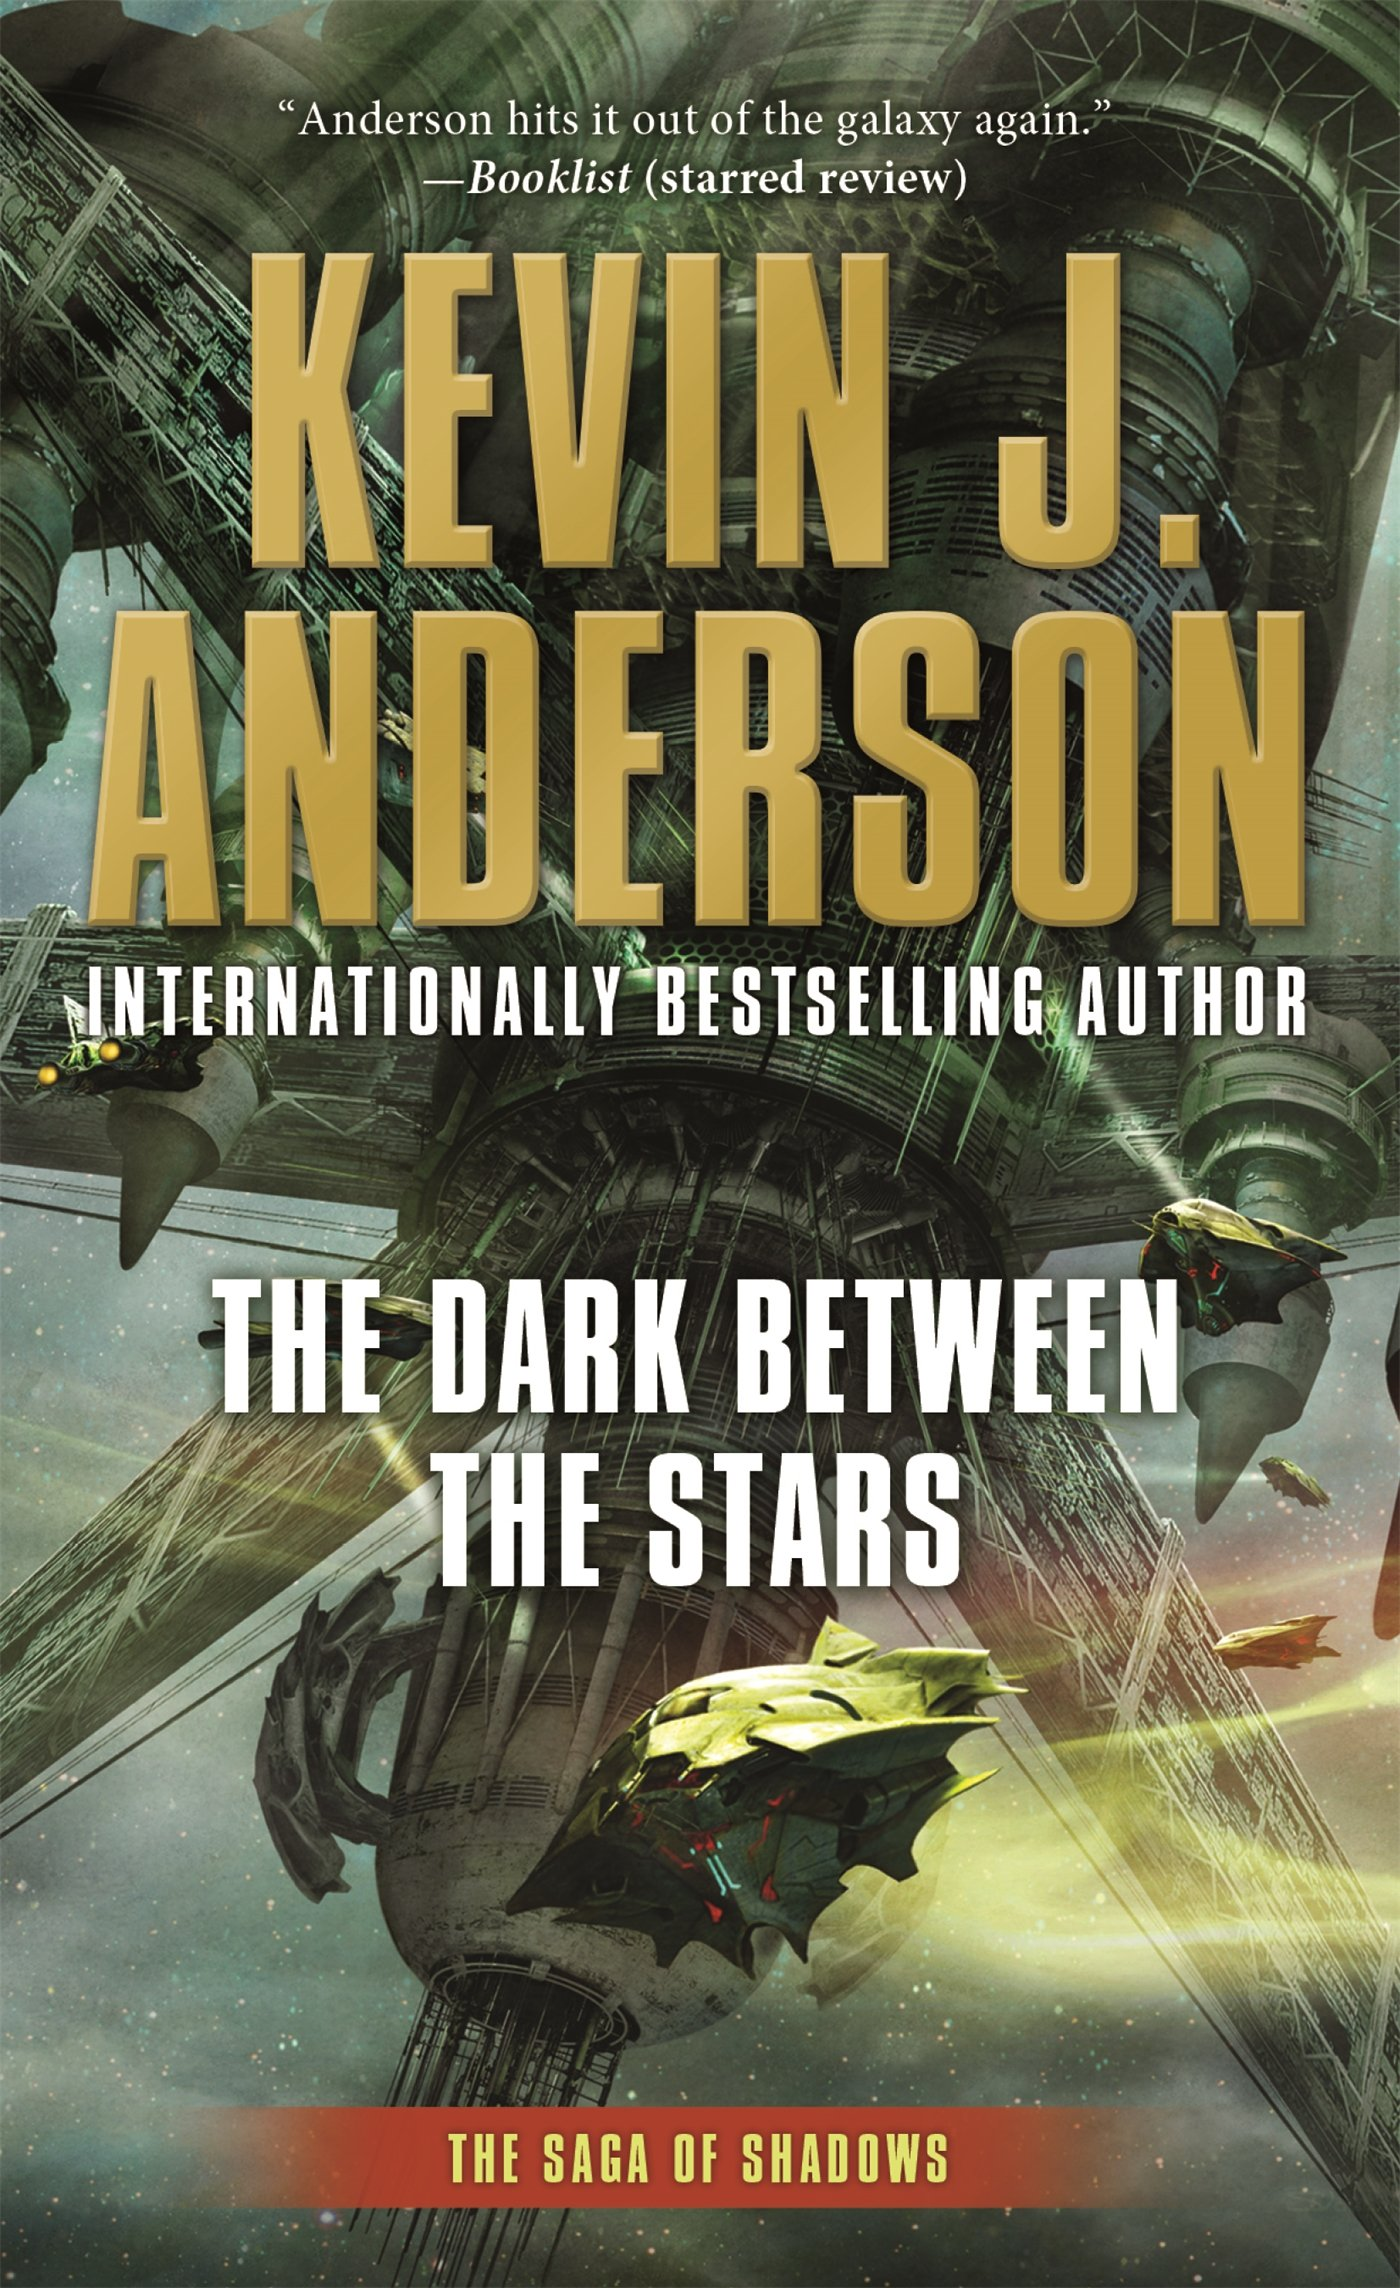 The Dark Between the Stars: The Saga of Shadows, Book One: Amazon.es: Anderson, Kevin J.: Libros en idiomas extranjeros